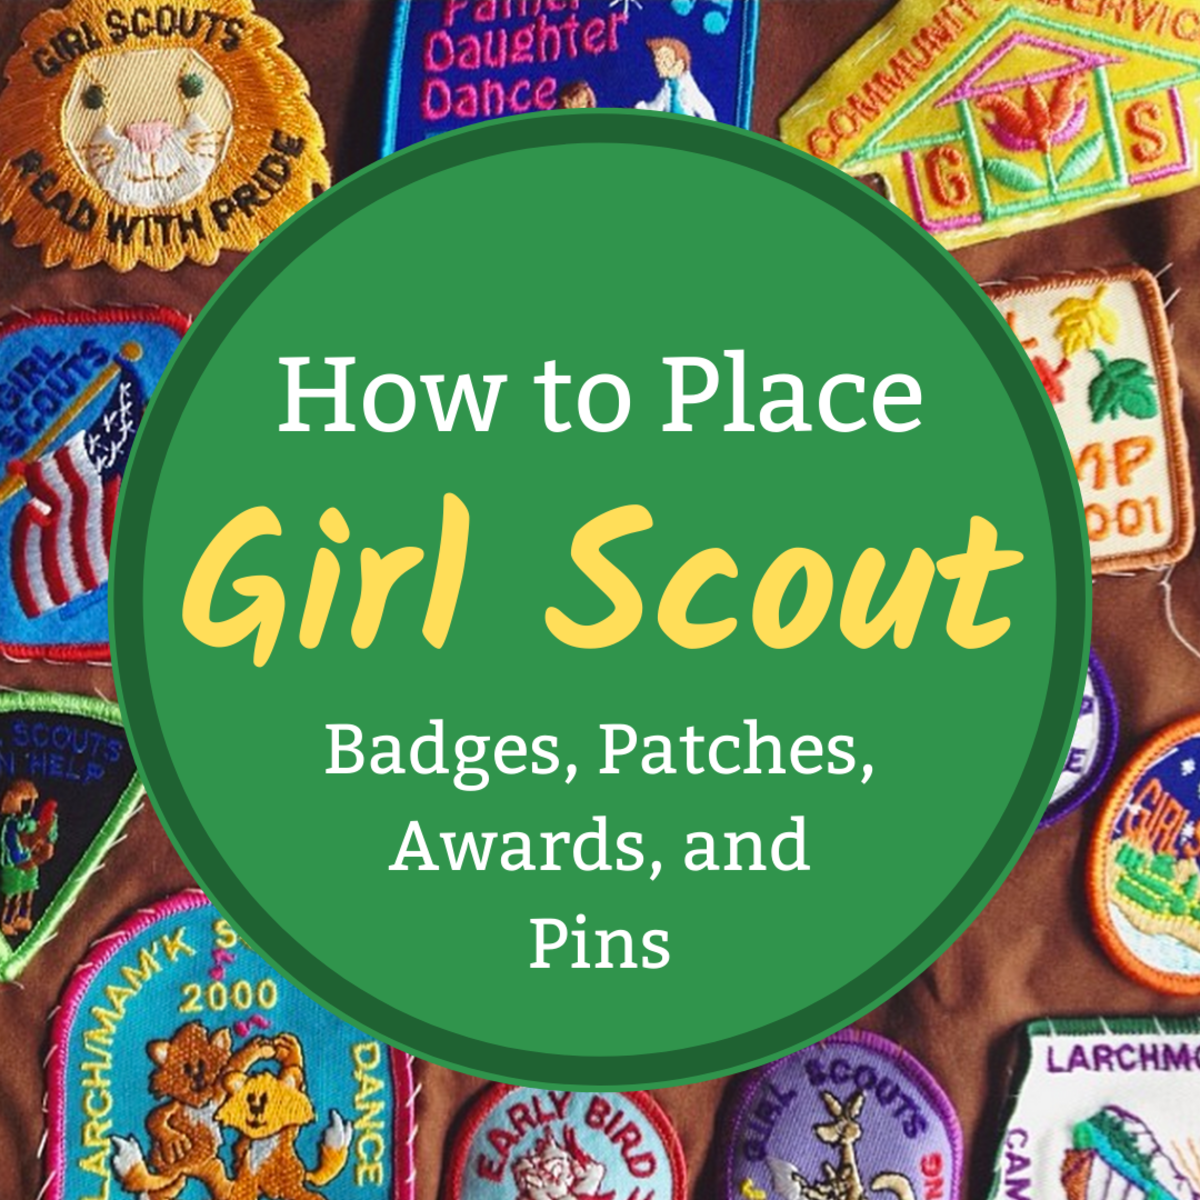 What Is the Correct Placement for Girl Scout Badges?